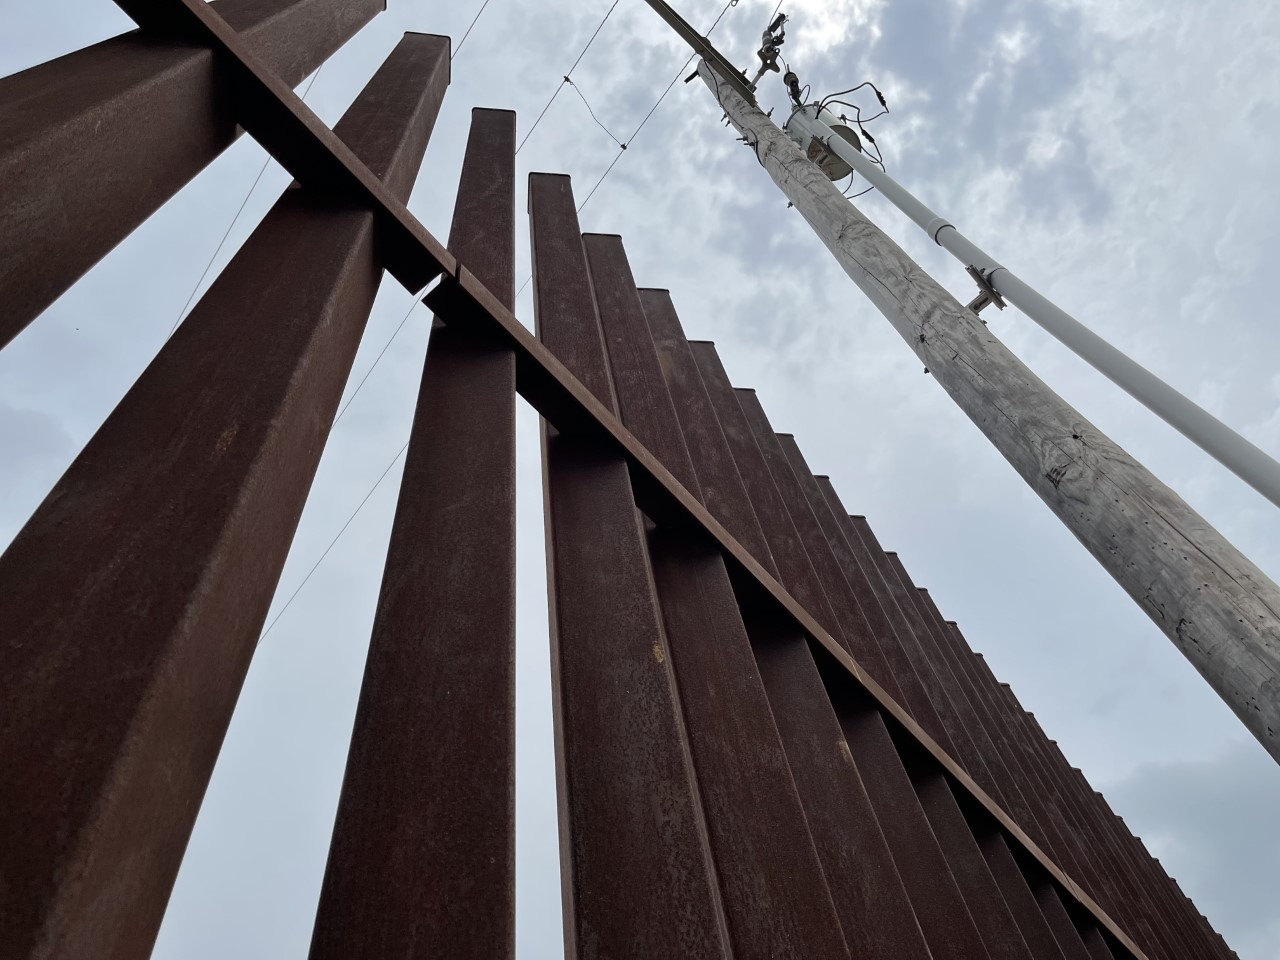 Texas lawmakers hope to protect COVID-19 relief funds from 'potential misuse' for border wall | KAMR - MyHighPlains.com